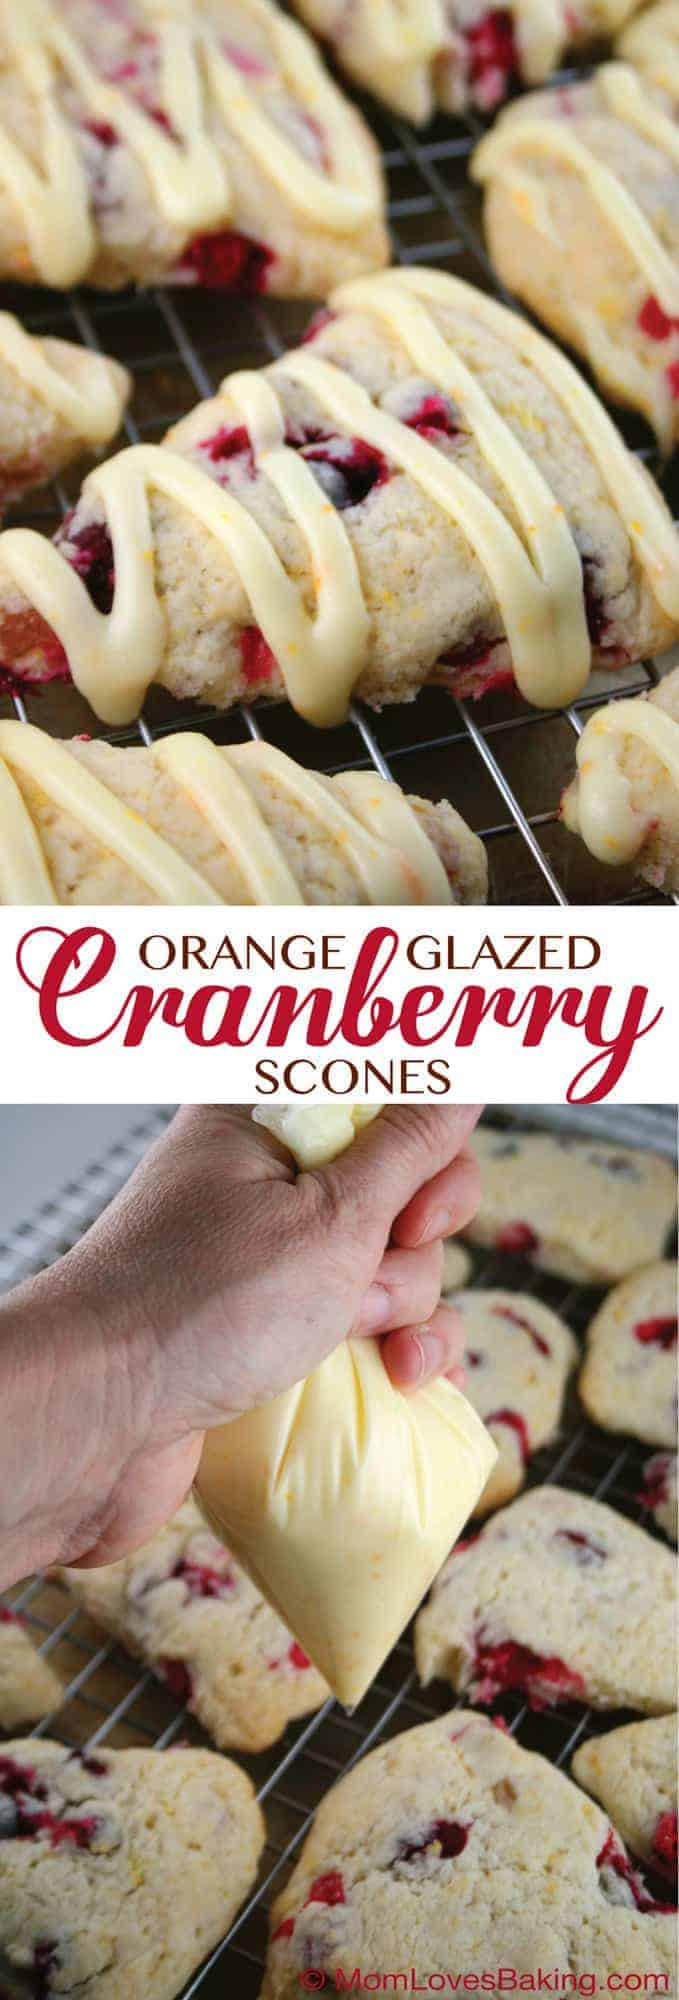 Orange Glazed Cranberry Scones | Mom Loves BakingMom Loves Baking